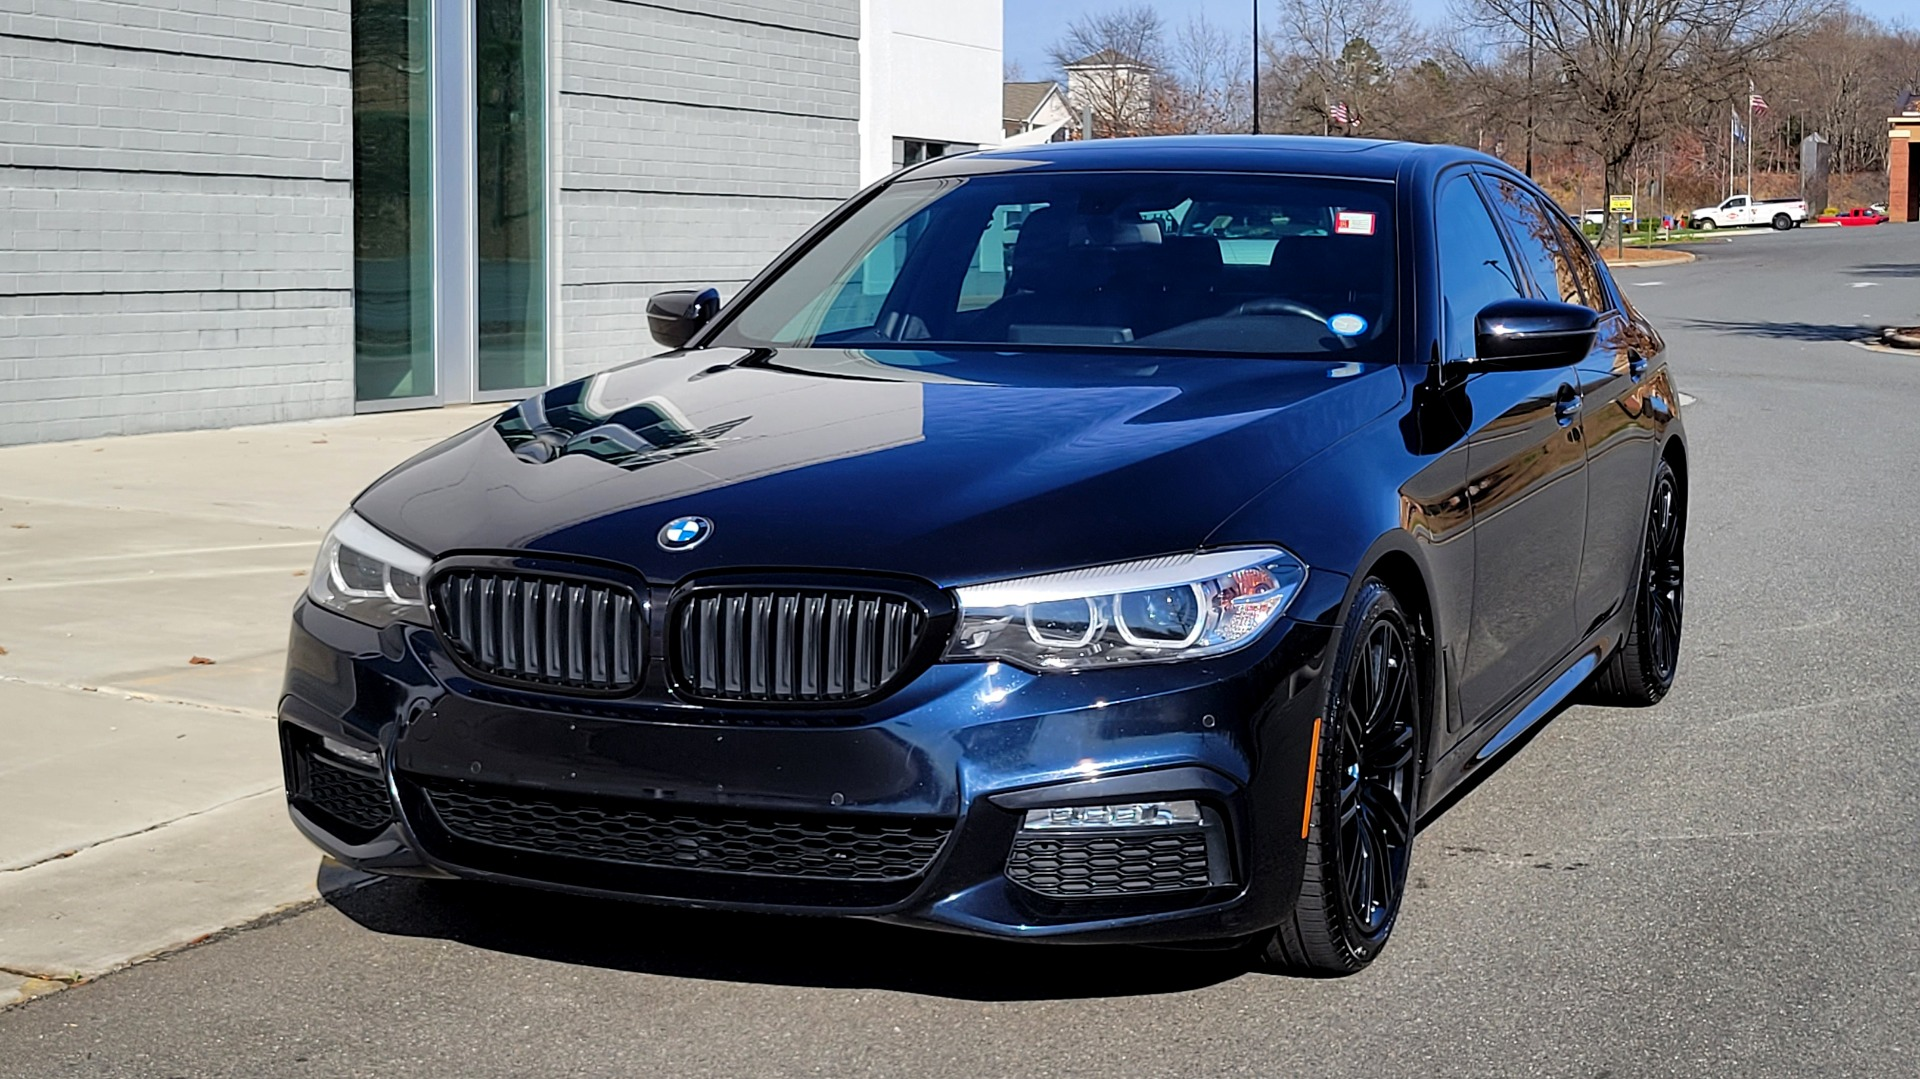 Used 2018 BMW 5 SERIES 540I XDRIVE / M-SPORT / NAV / WIFI / SUNROOF / REARVIEW for sale $36,773 at Formula Imports in Charlotte NC 28227 3